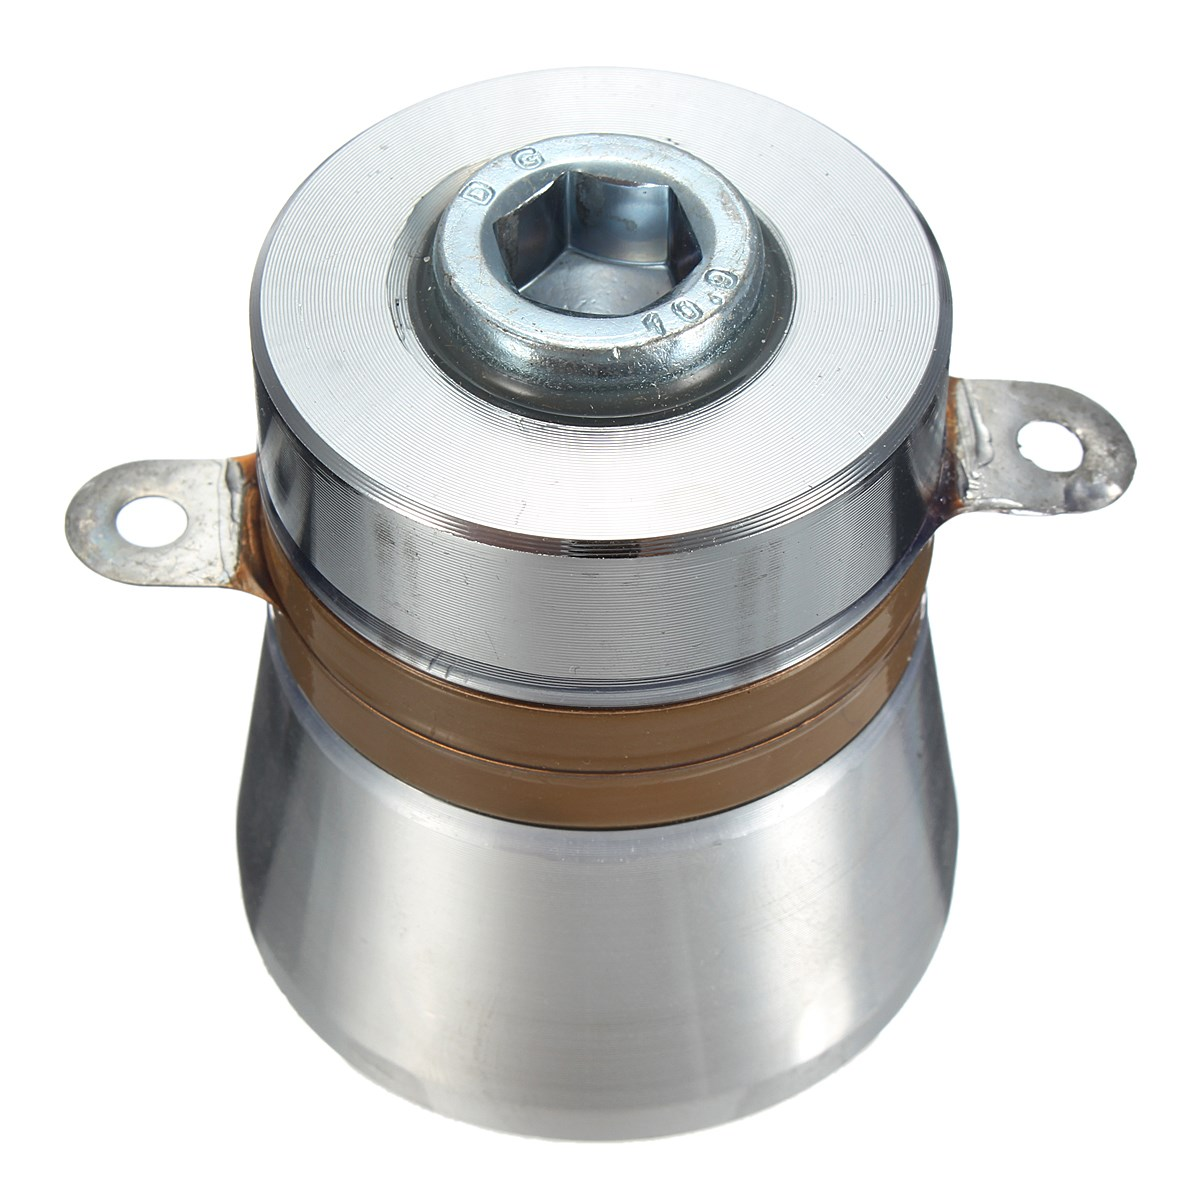 ultrasonic transducers Find great deals on ebay for ultrasonic transducers and ultrasonic probe shop with confidence.